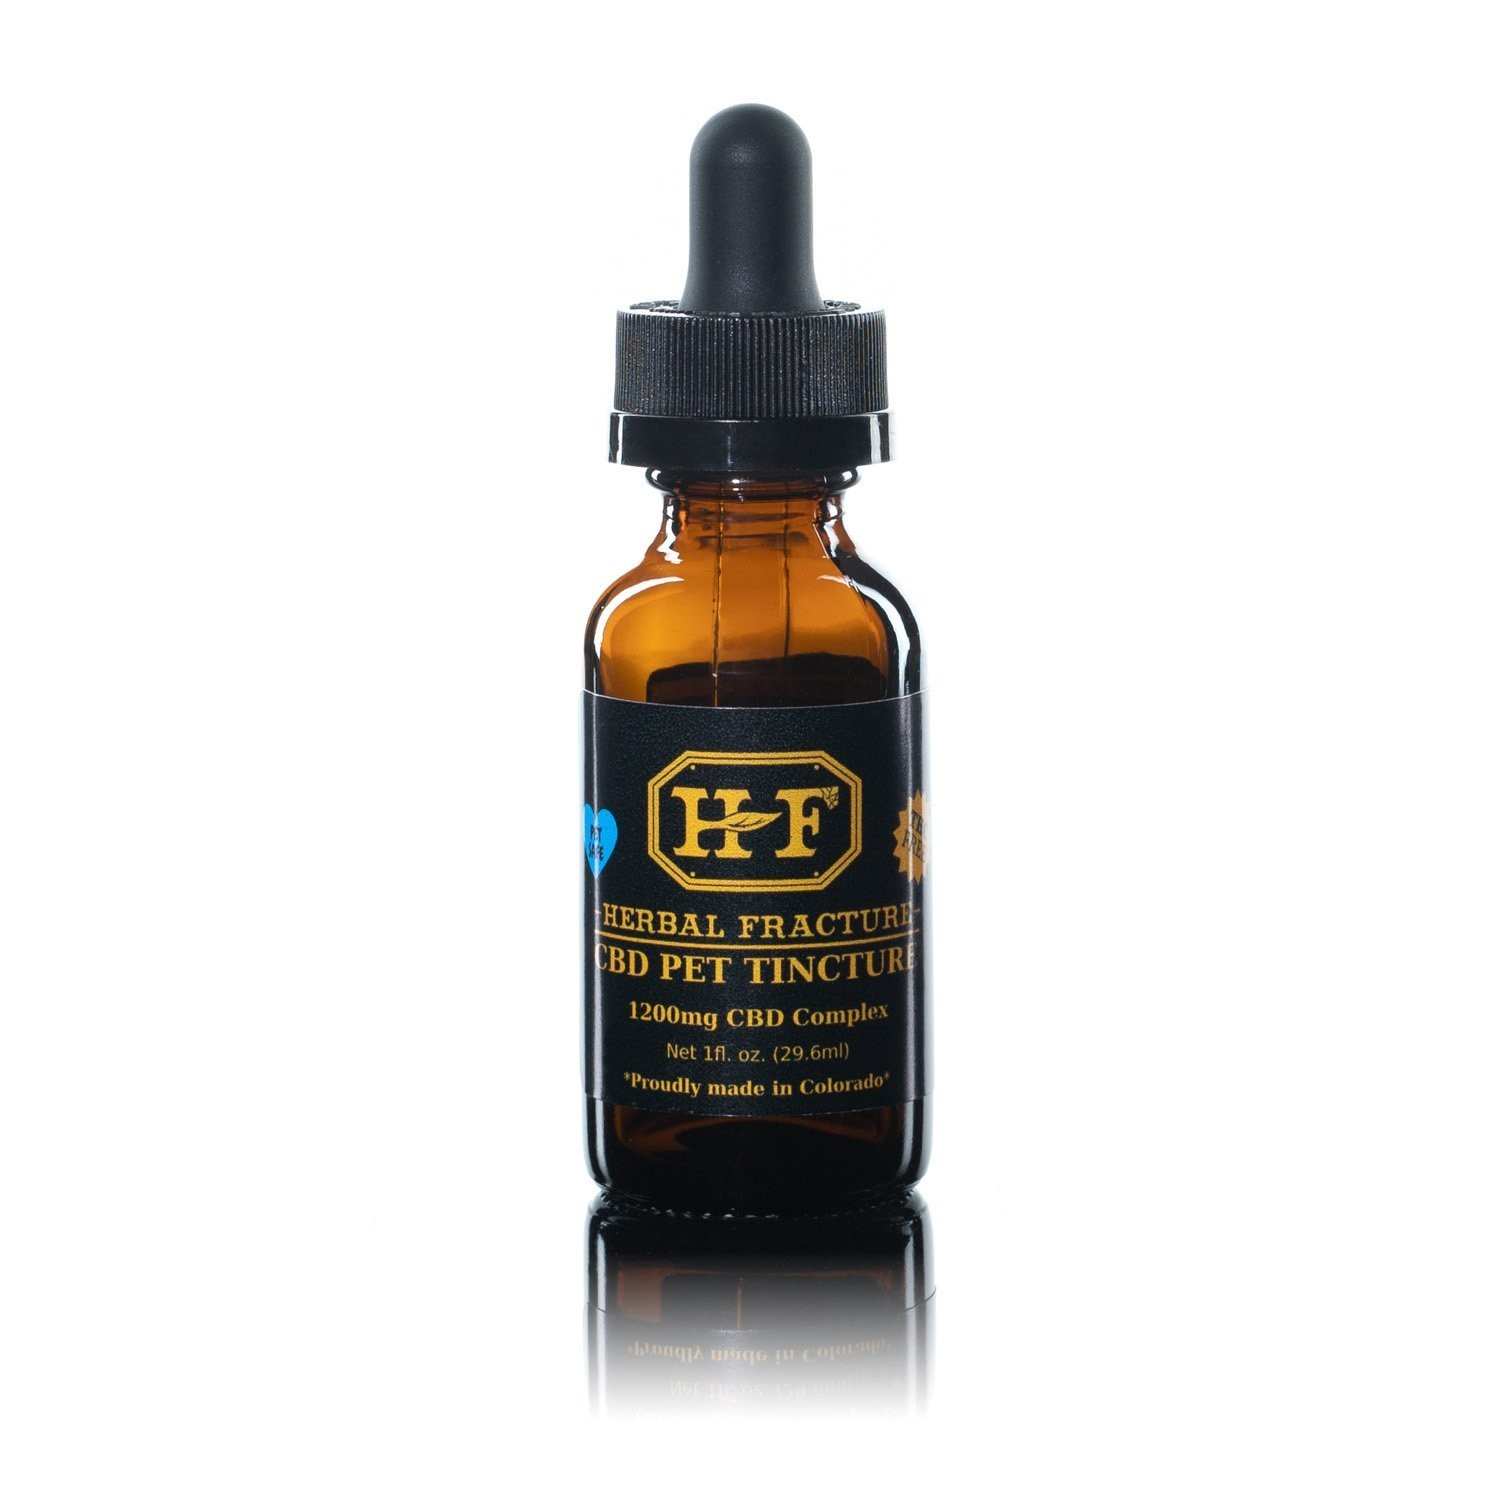 Pet Tincture (Cod Oil/Flavorless) Isolate 300 mg